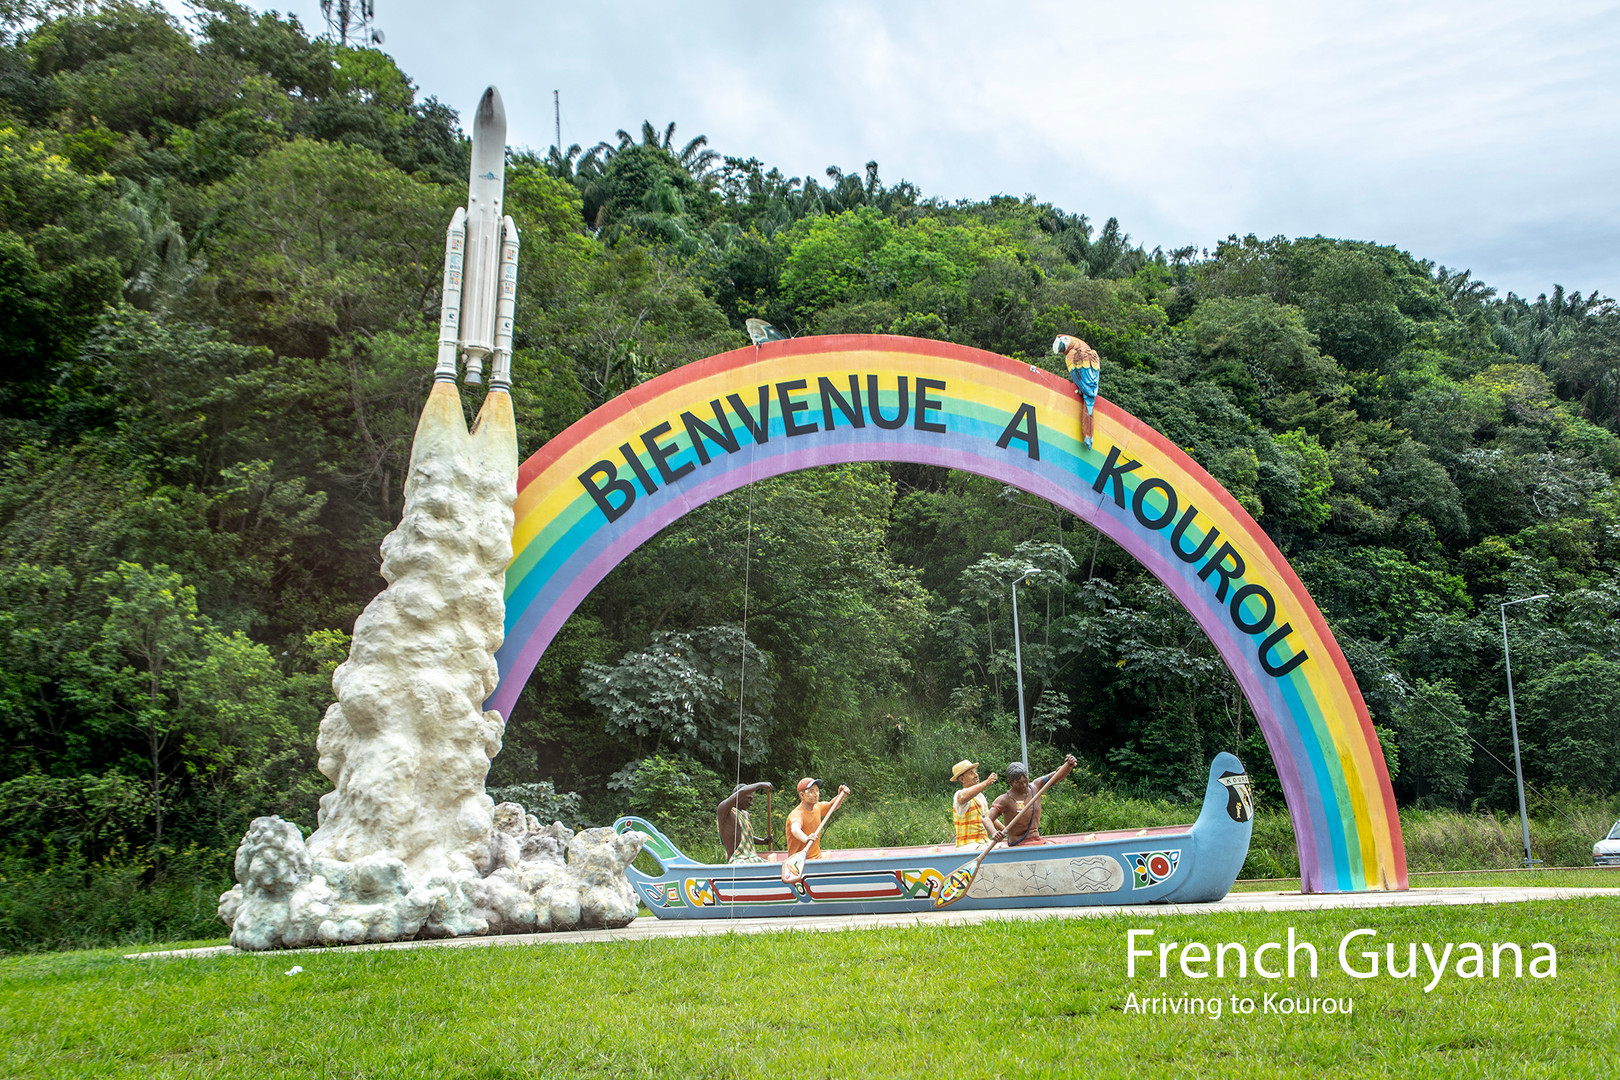 2019-05-15 French Guyana POW (17) 452A67